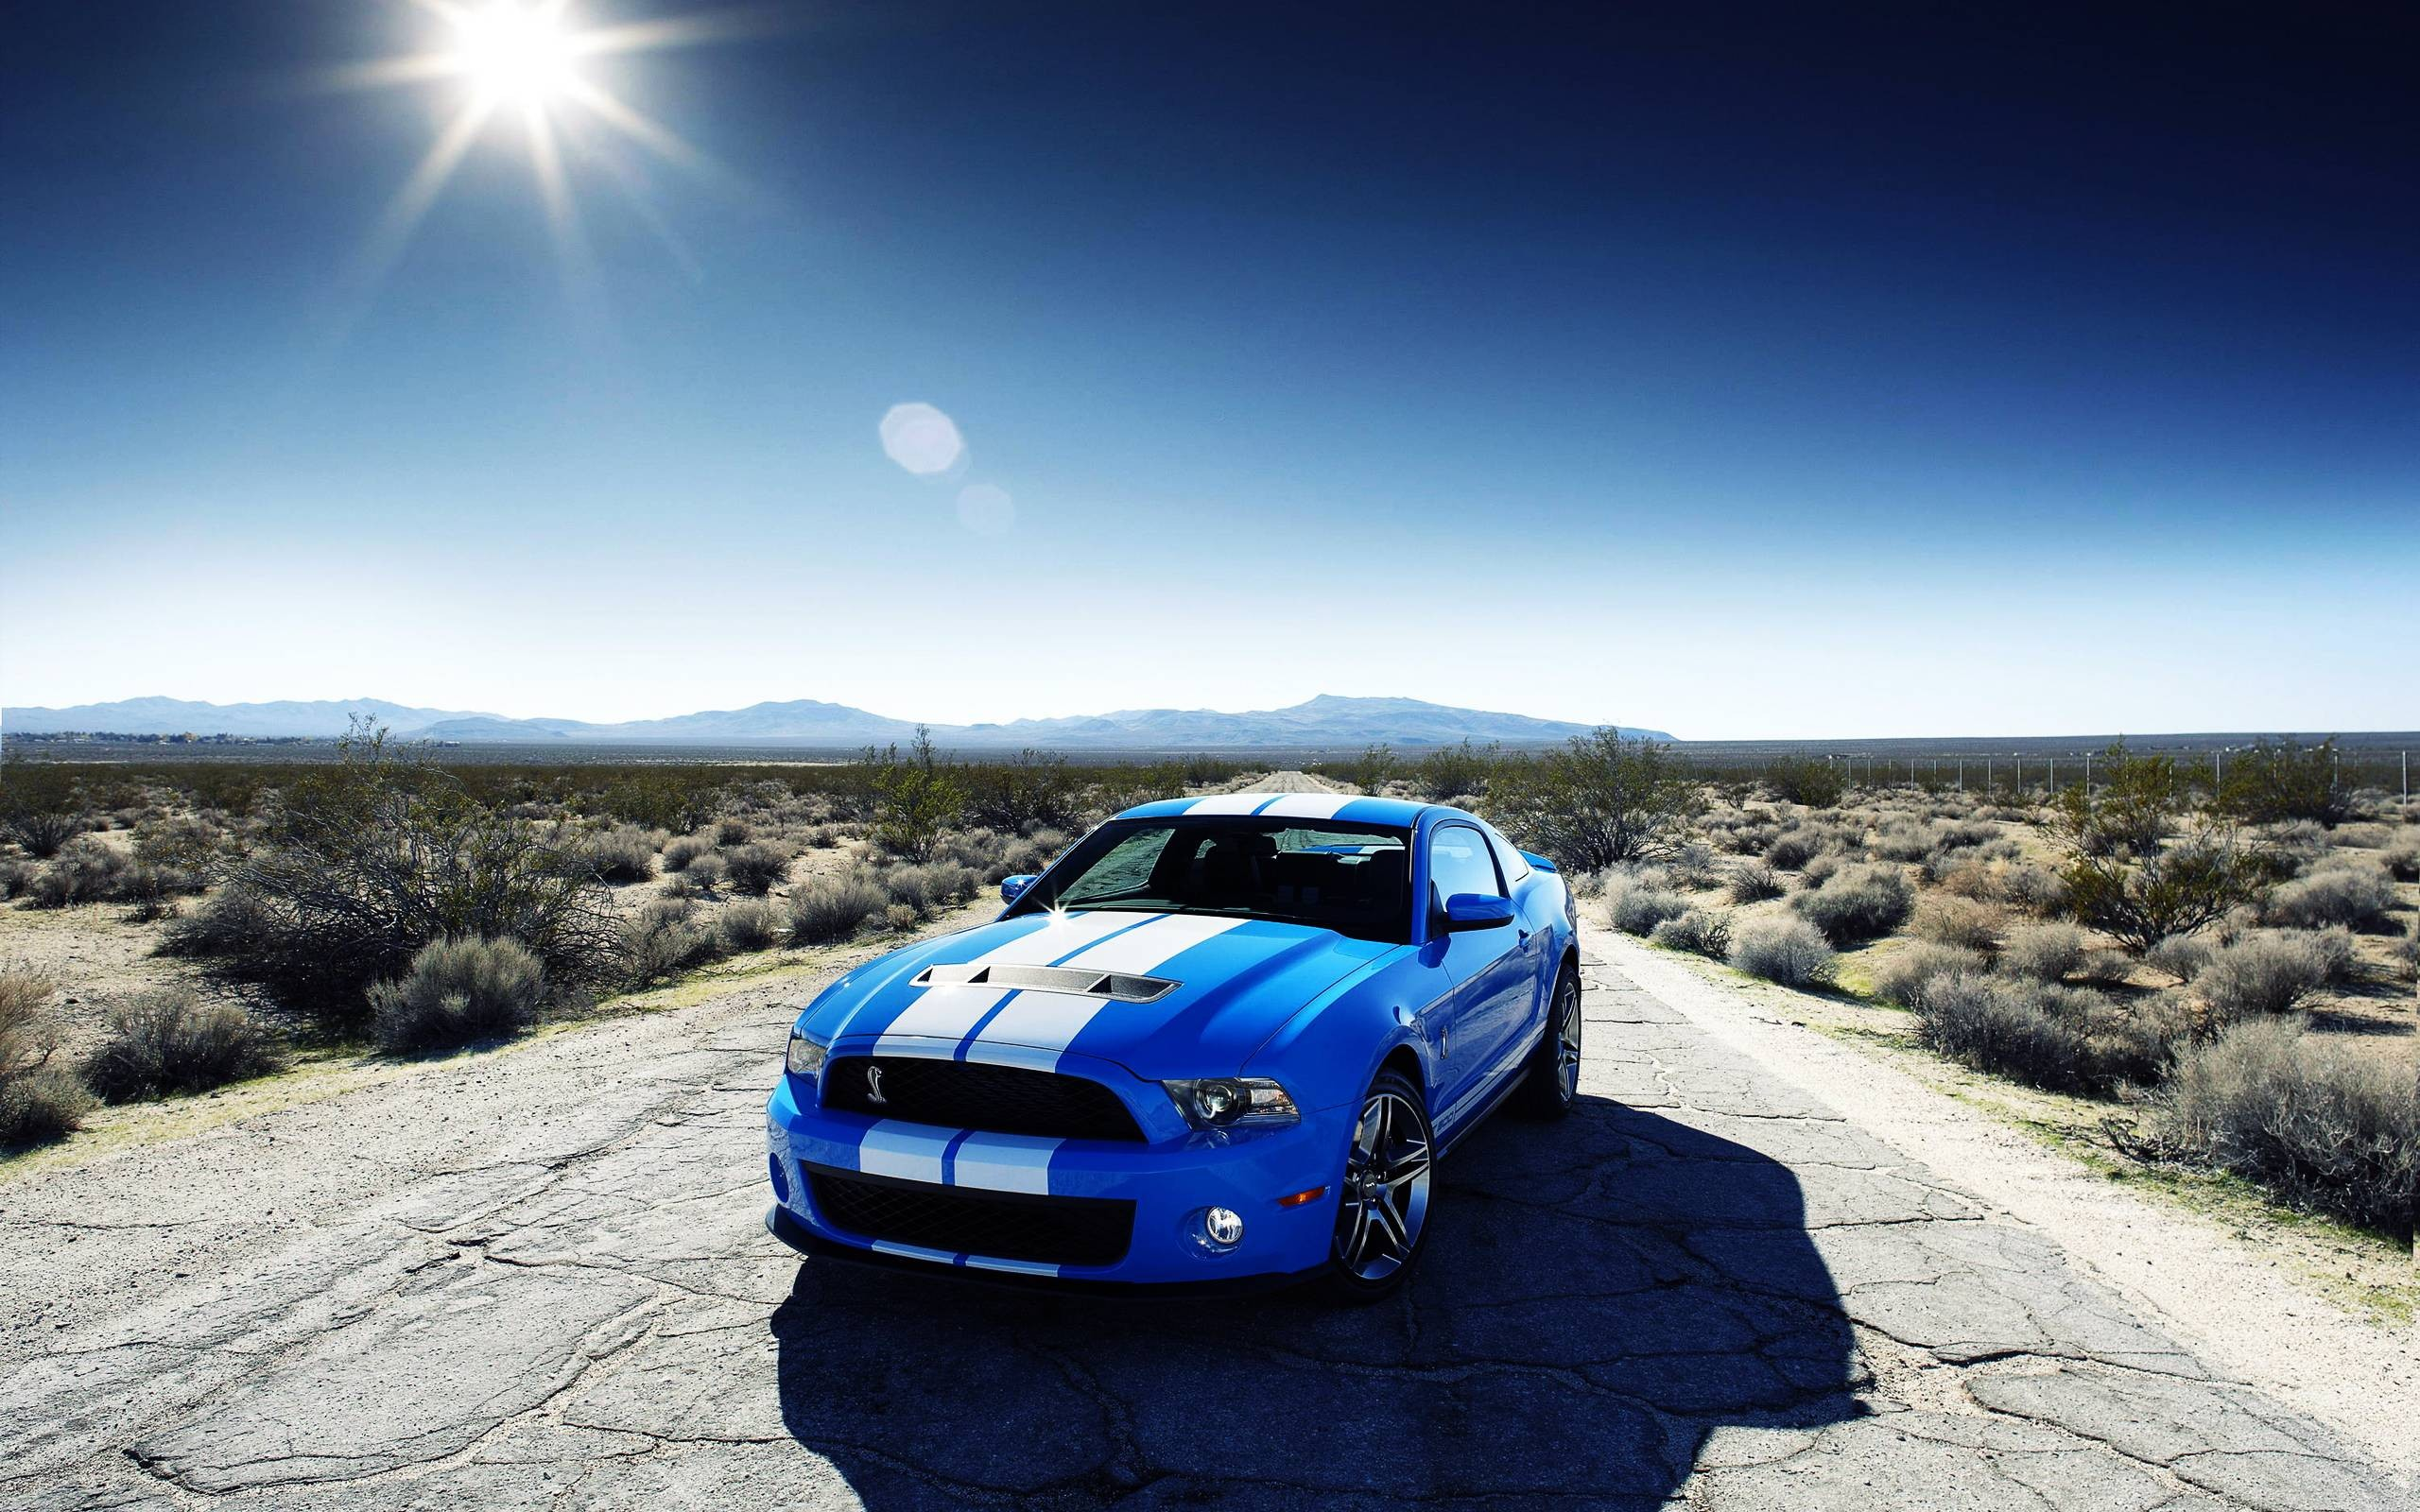 35 Car Wallpapers Hd Download Free Stunning Full Hd Backgrounds